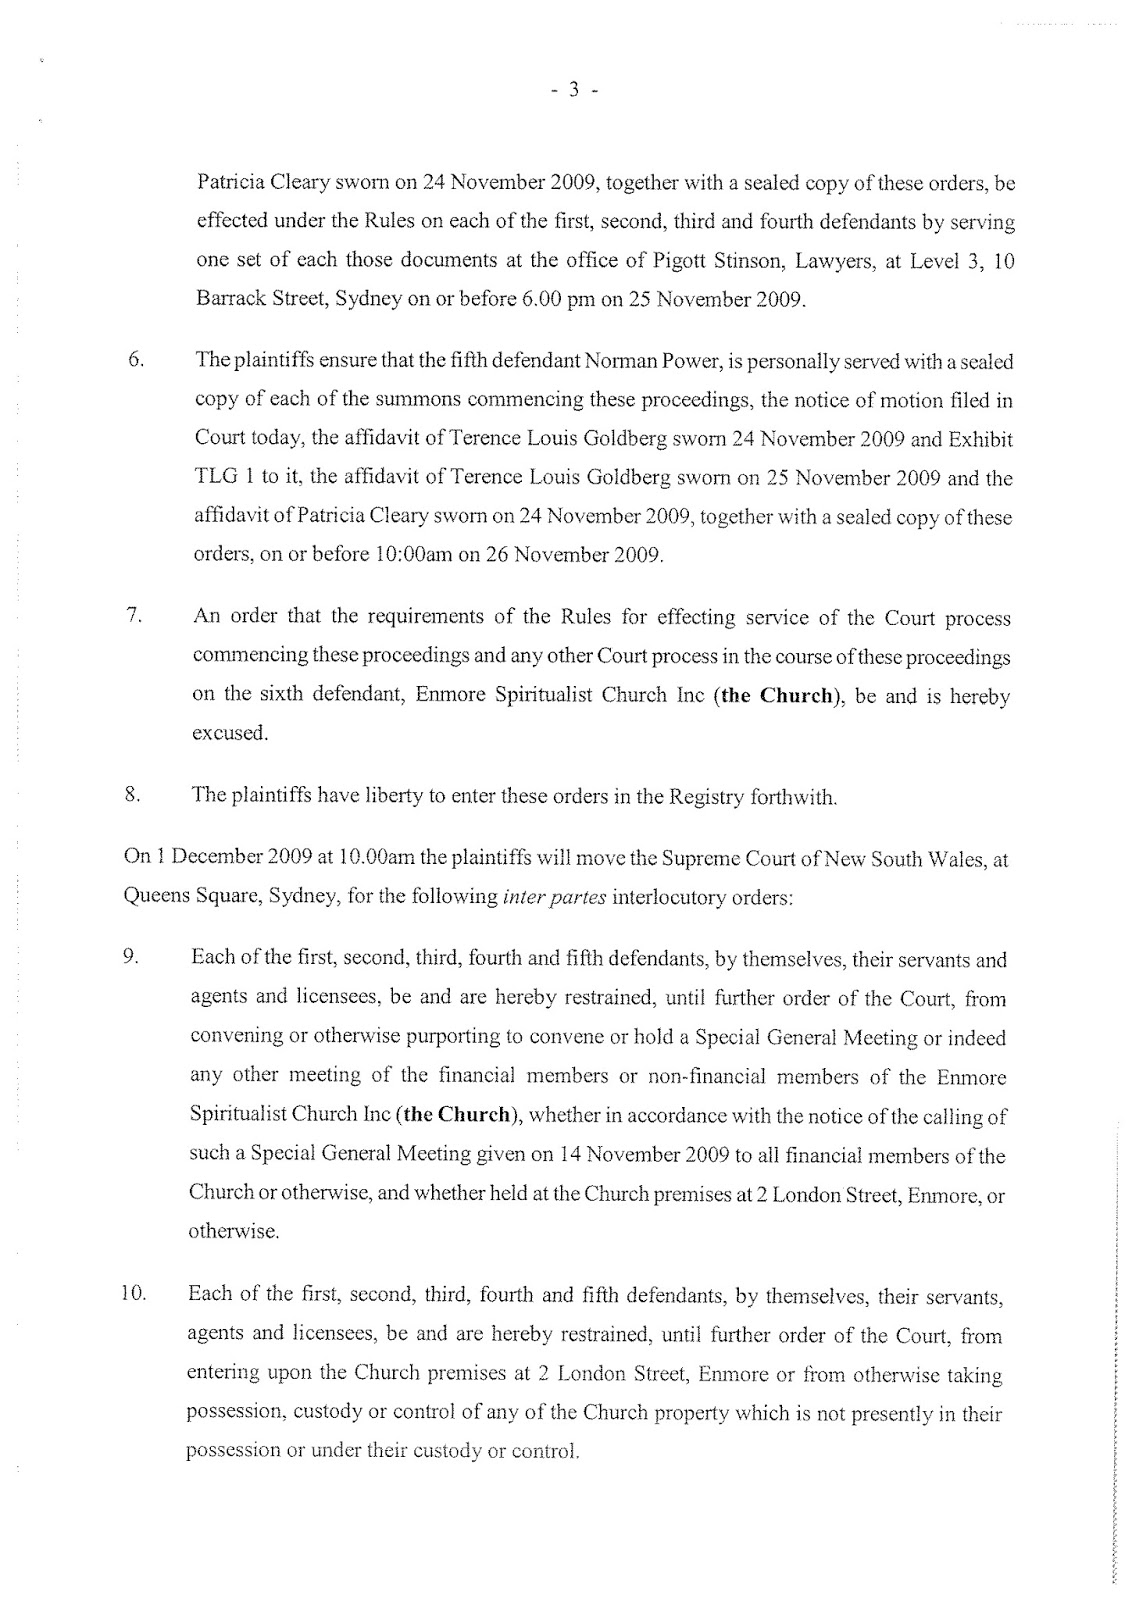 Notice of Motion in relation to proceedings 2009/00291458-001 (then 5454/2009)